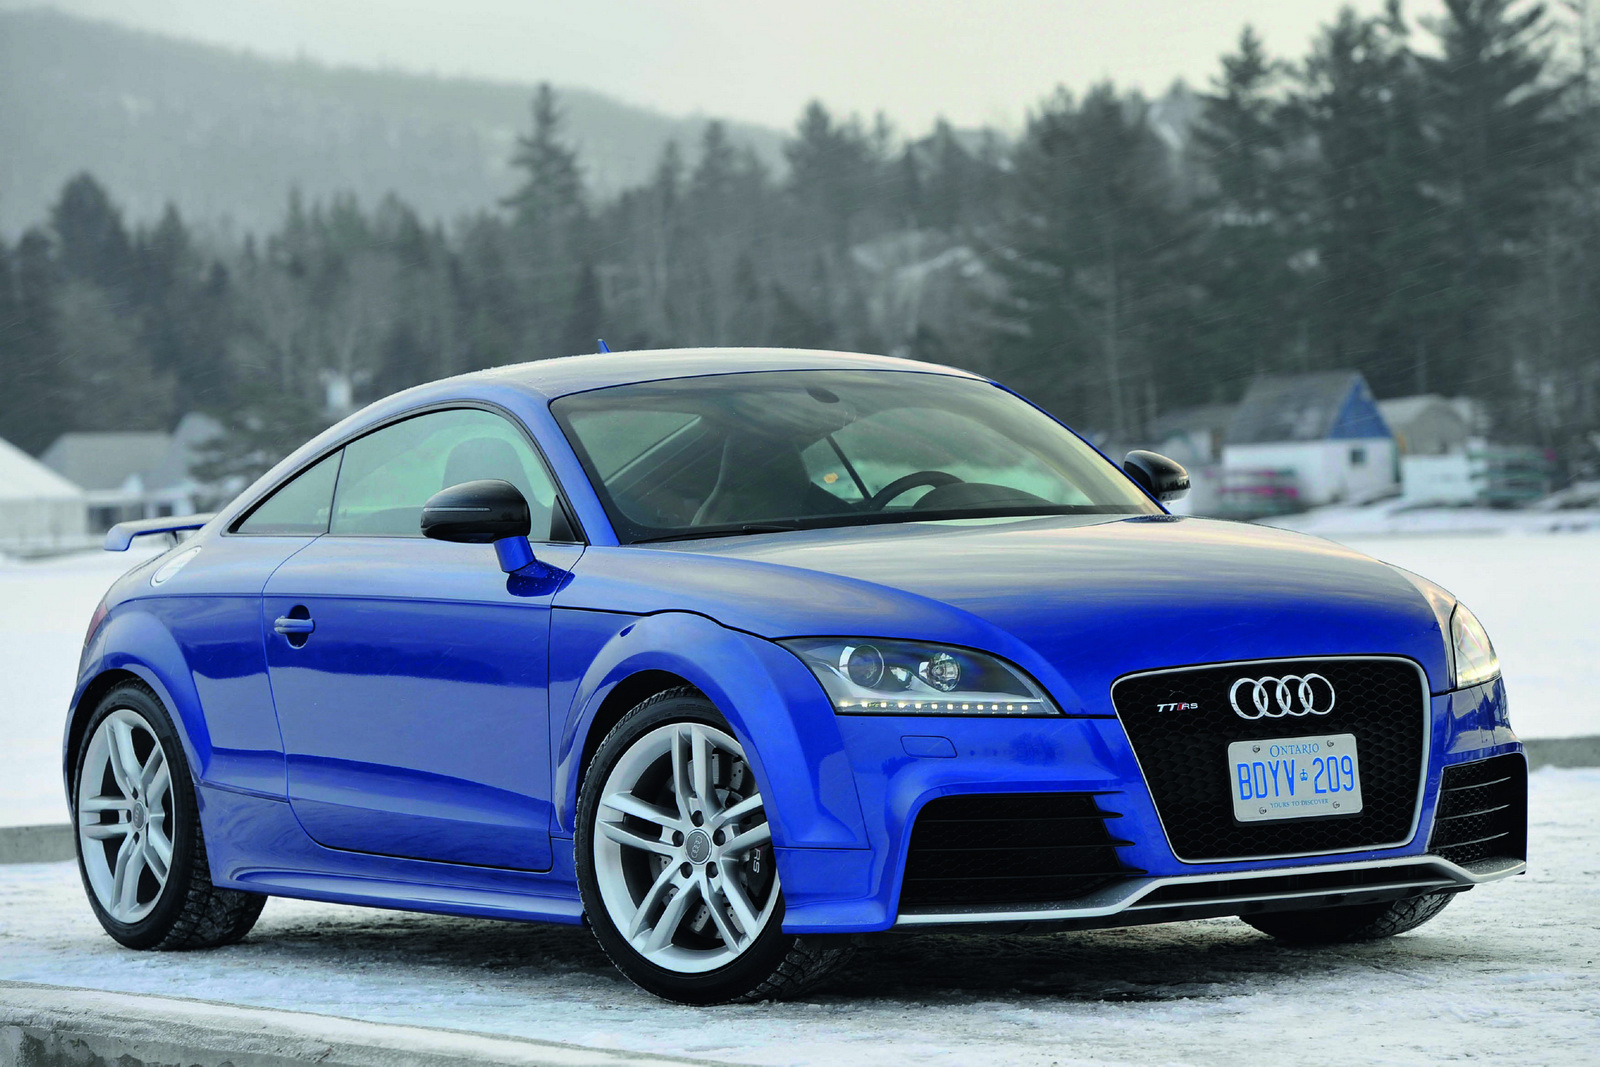 2012 Audi TT RS New Audi TT RS available in US just at $ 56,850